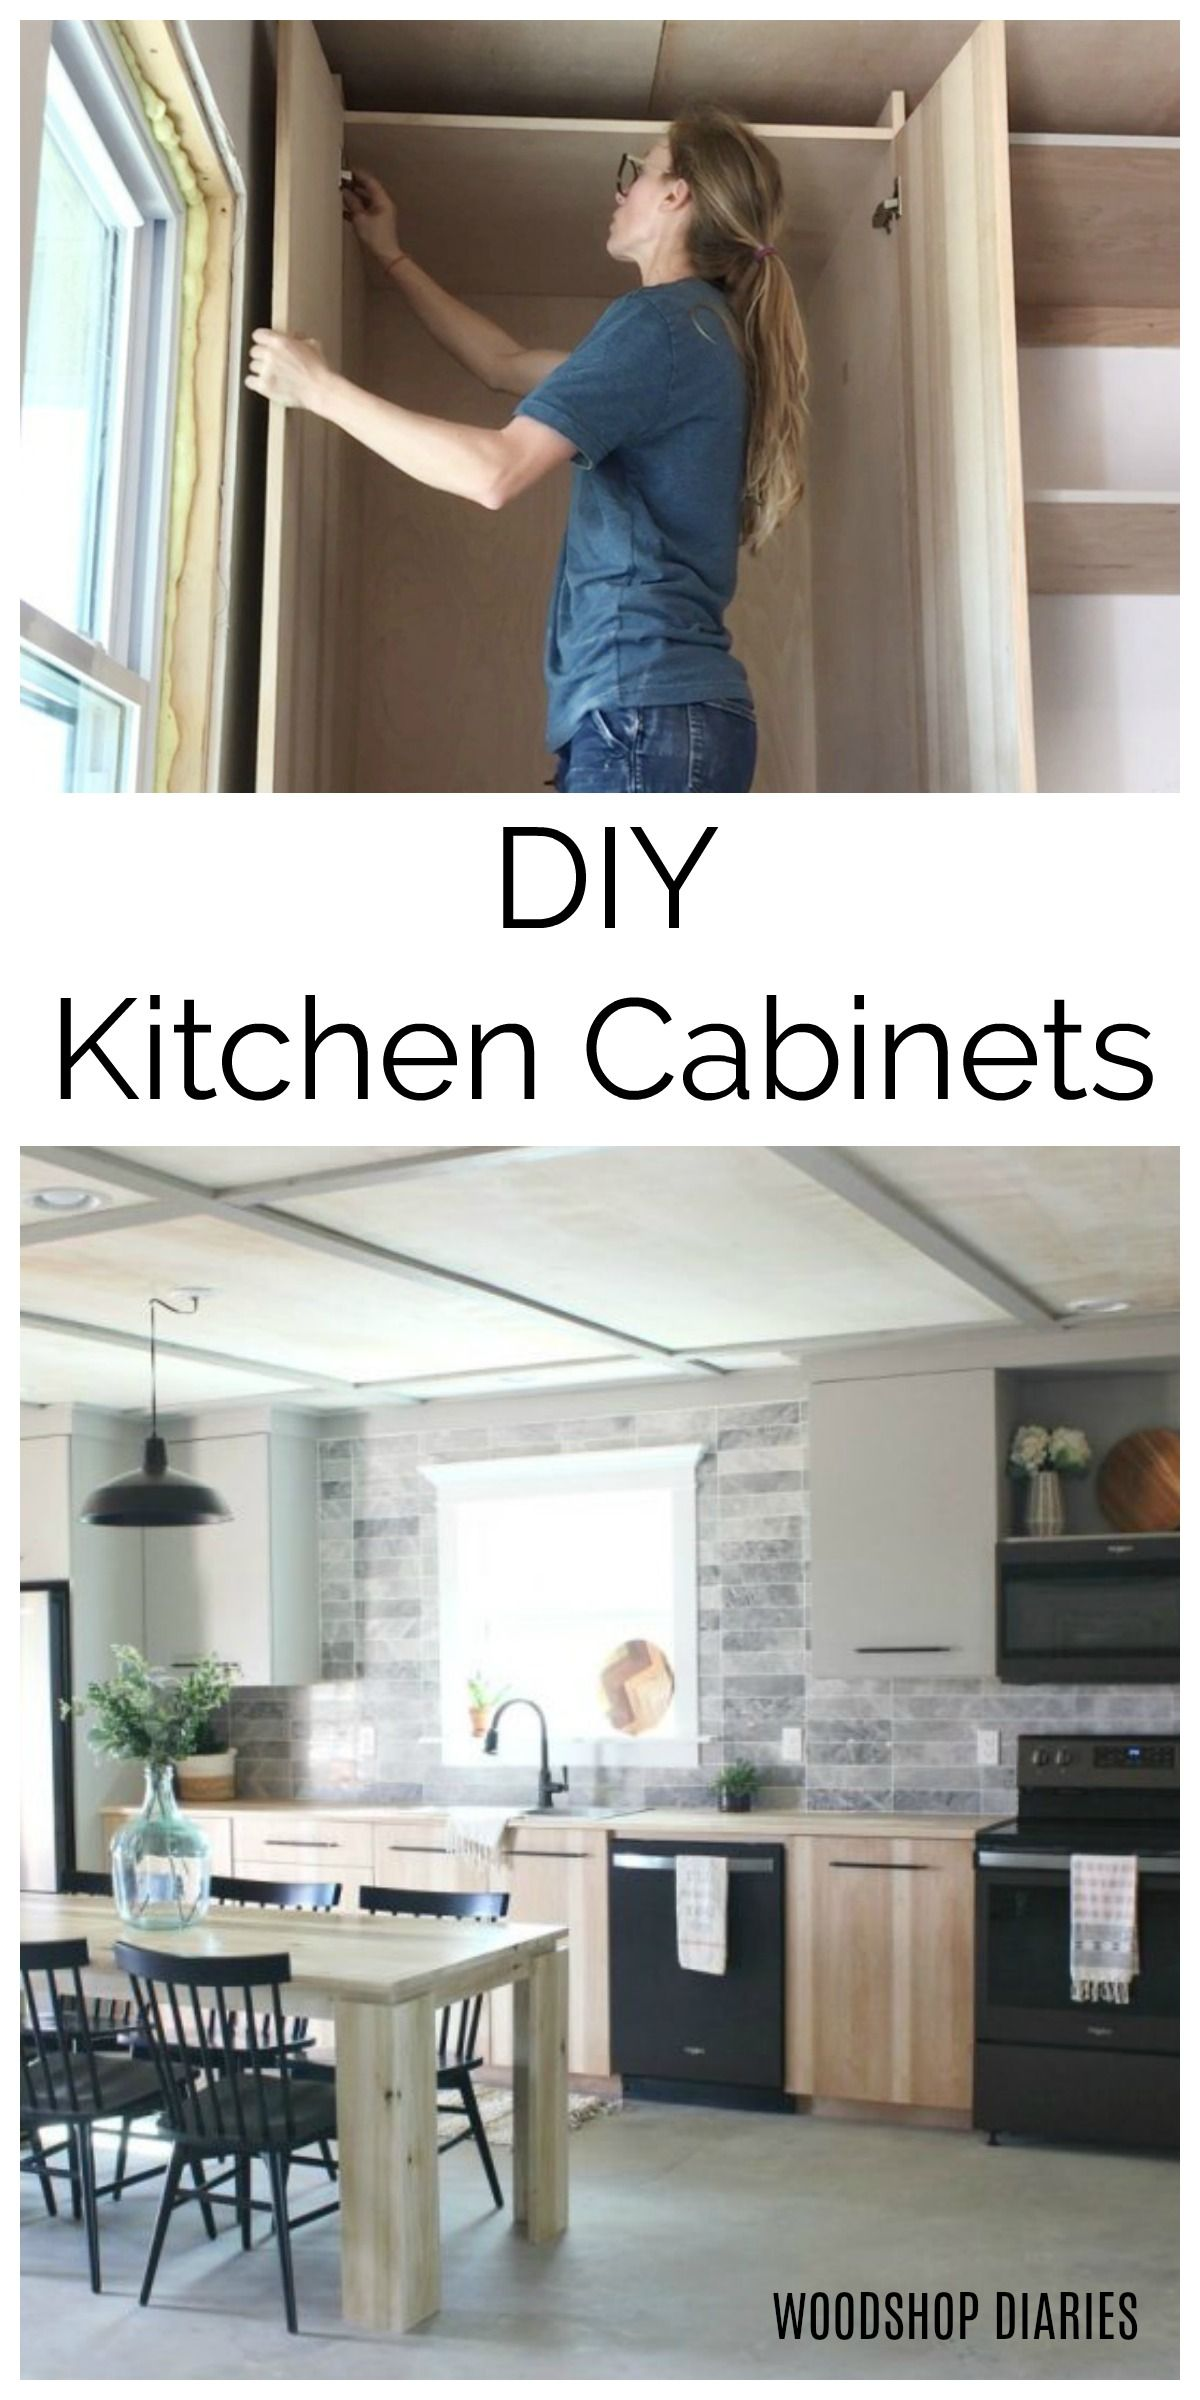 Diy Kitchen Cabinets Made From Only Plywood In 2020 With Images Building Kitchen Cabinets